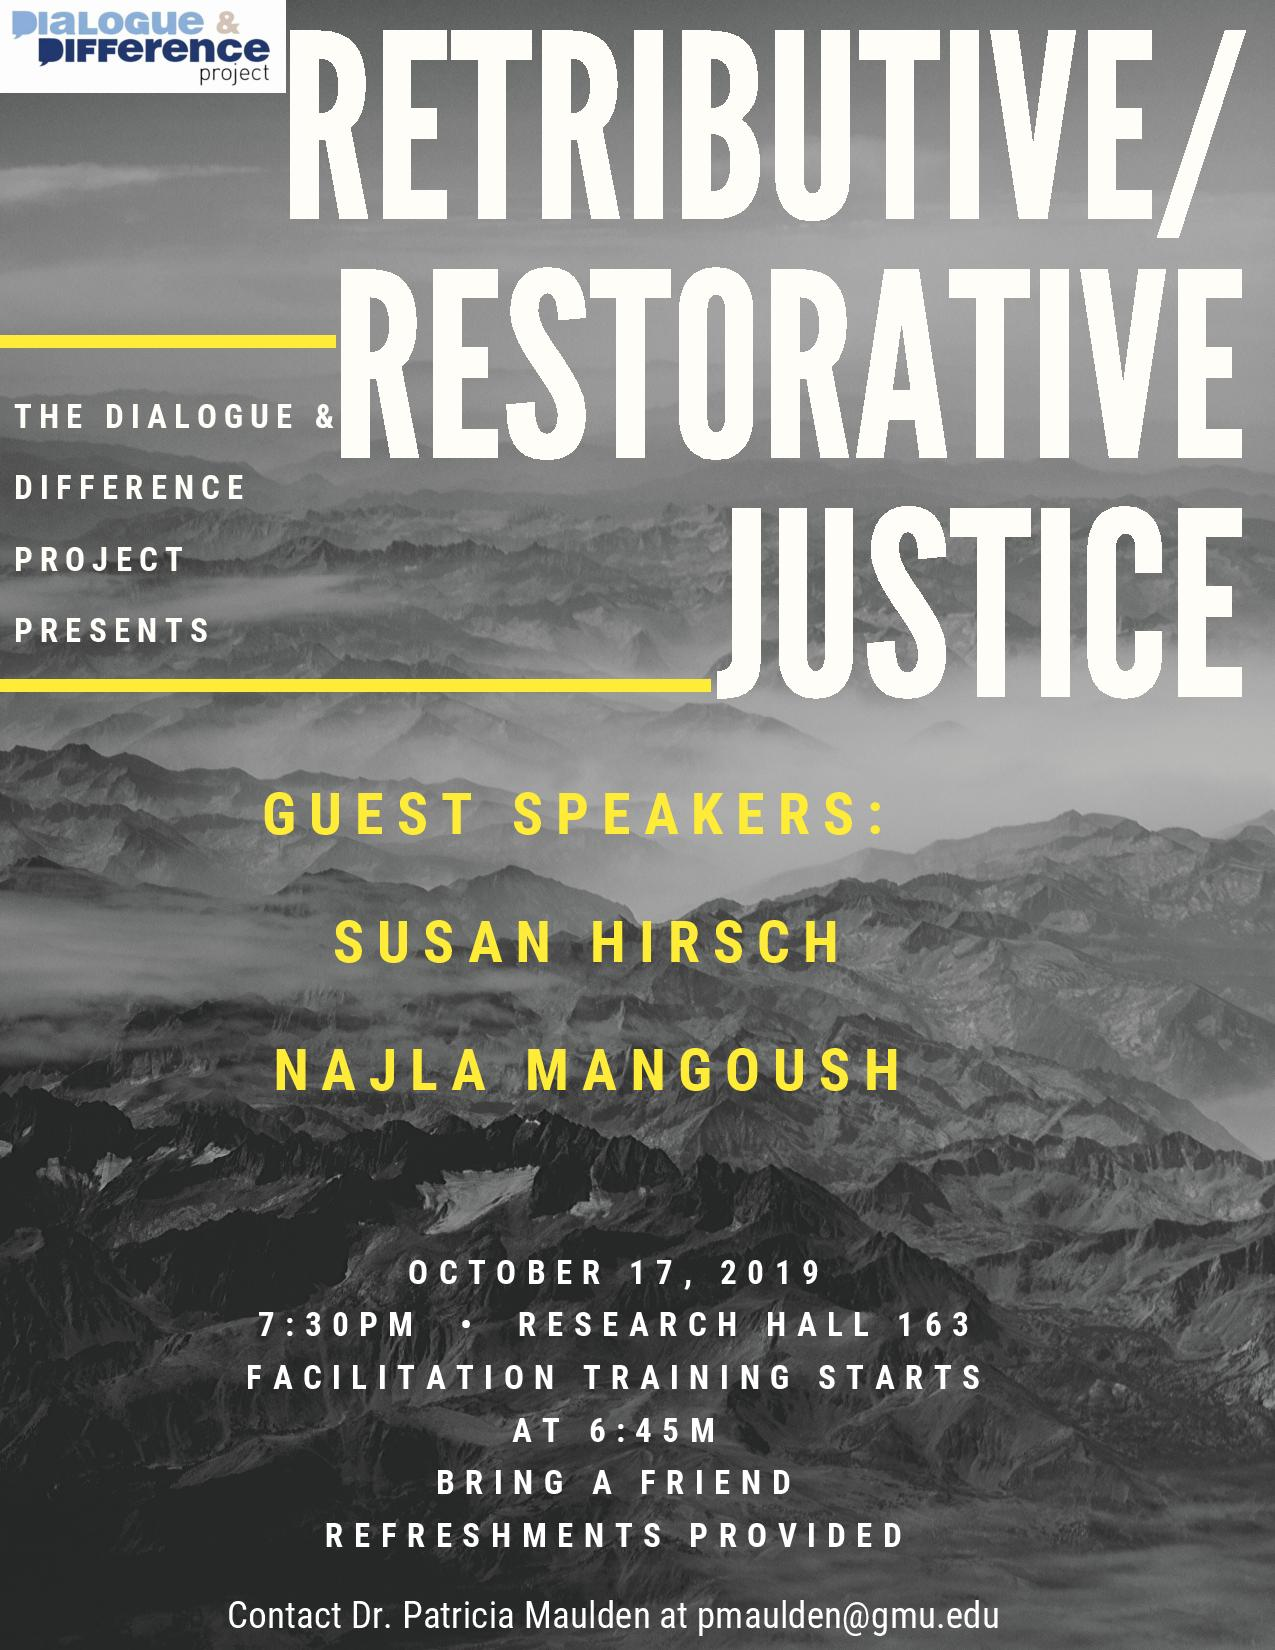 RetributiveRestorative Justice Dialgoue Event-page-001